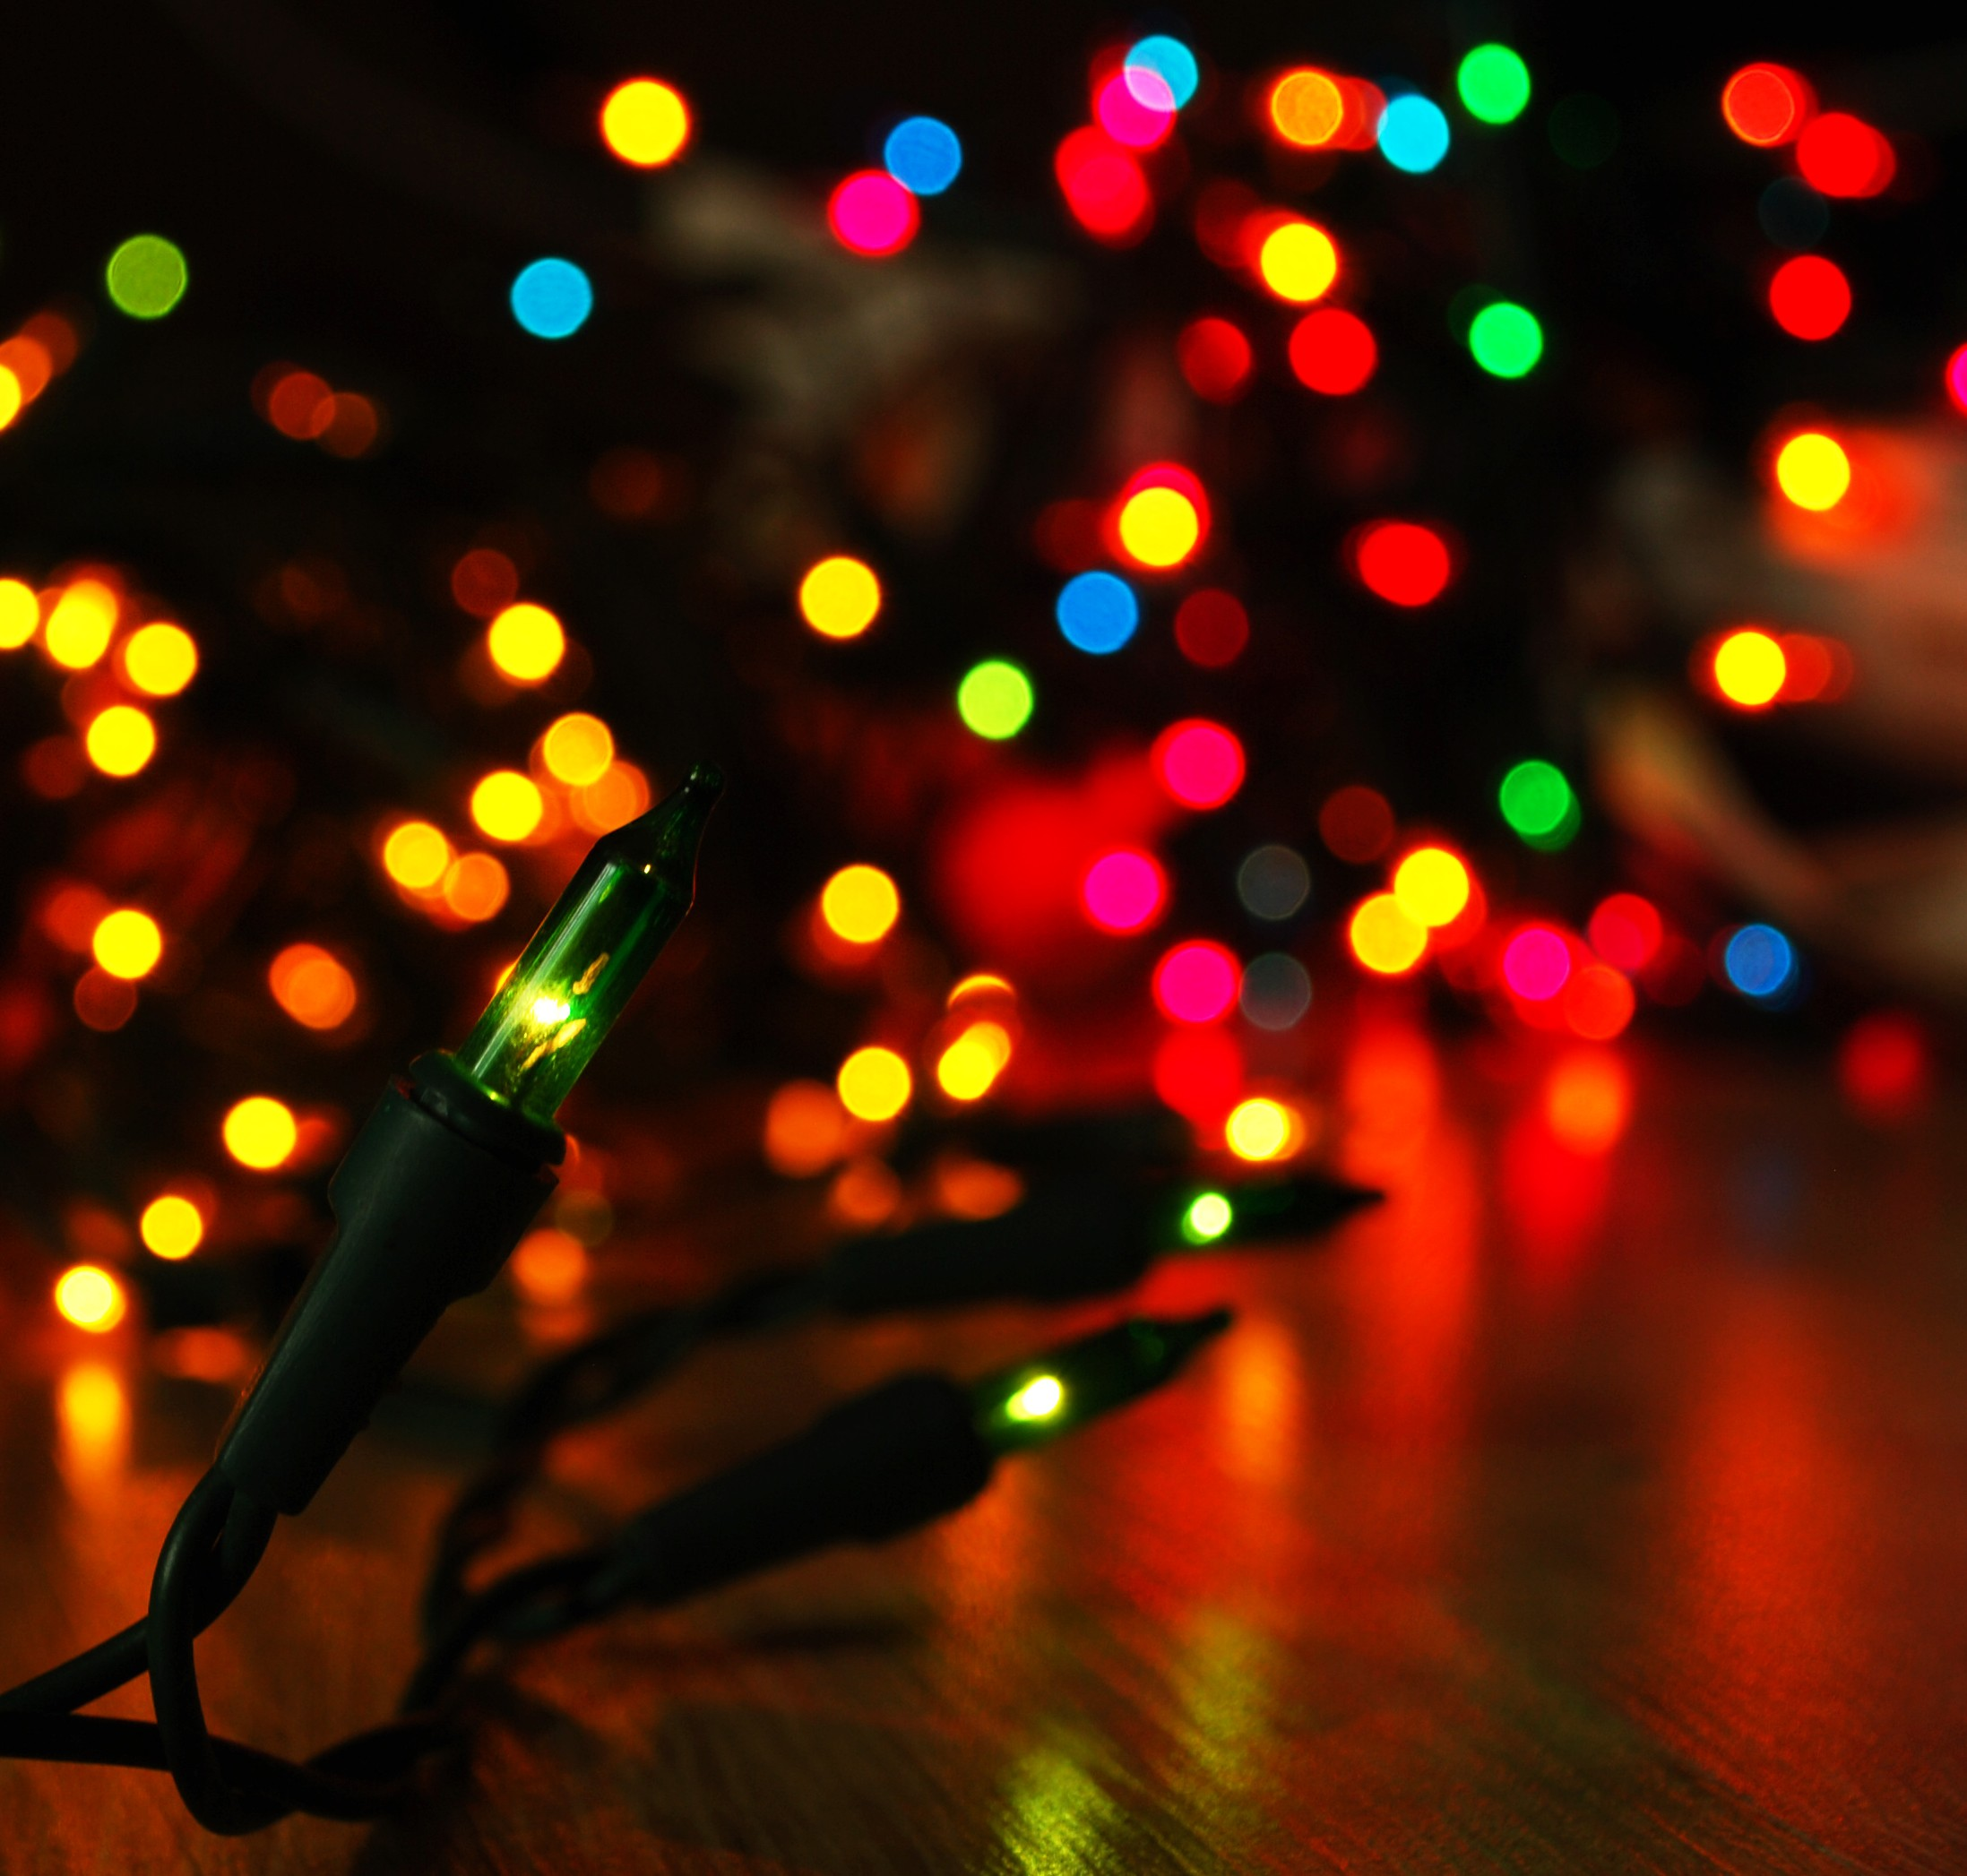 154495 christmas backgrounds tumblr 2195x2094 hd for mobile